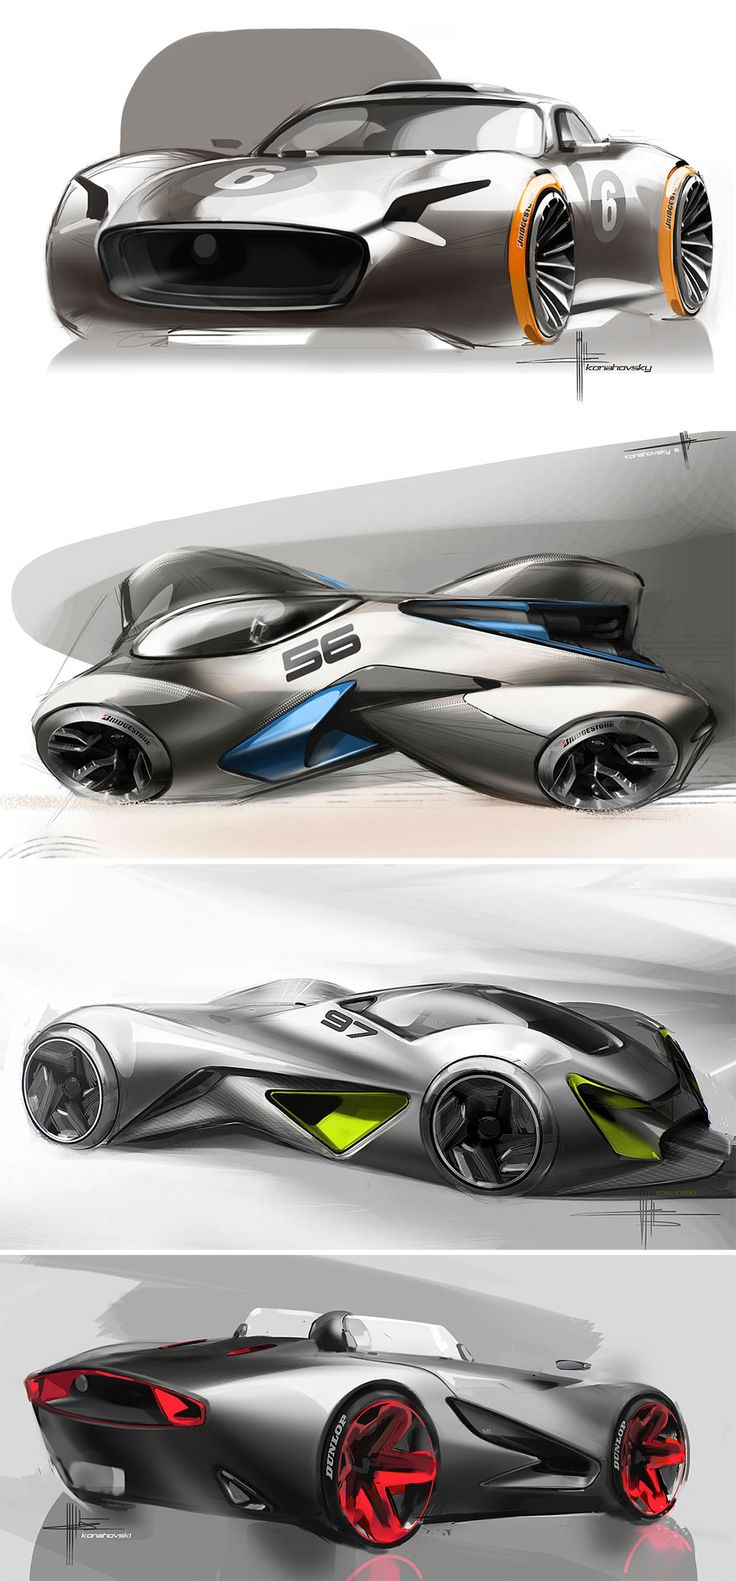 Concept Car Design Sketches by Svyatoslav Konahovski